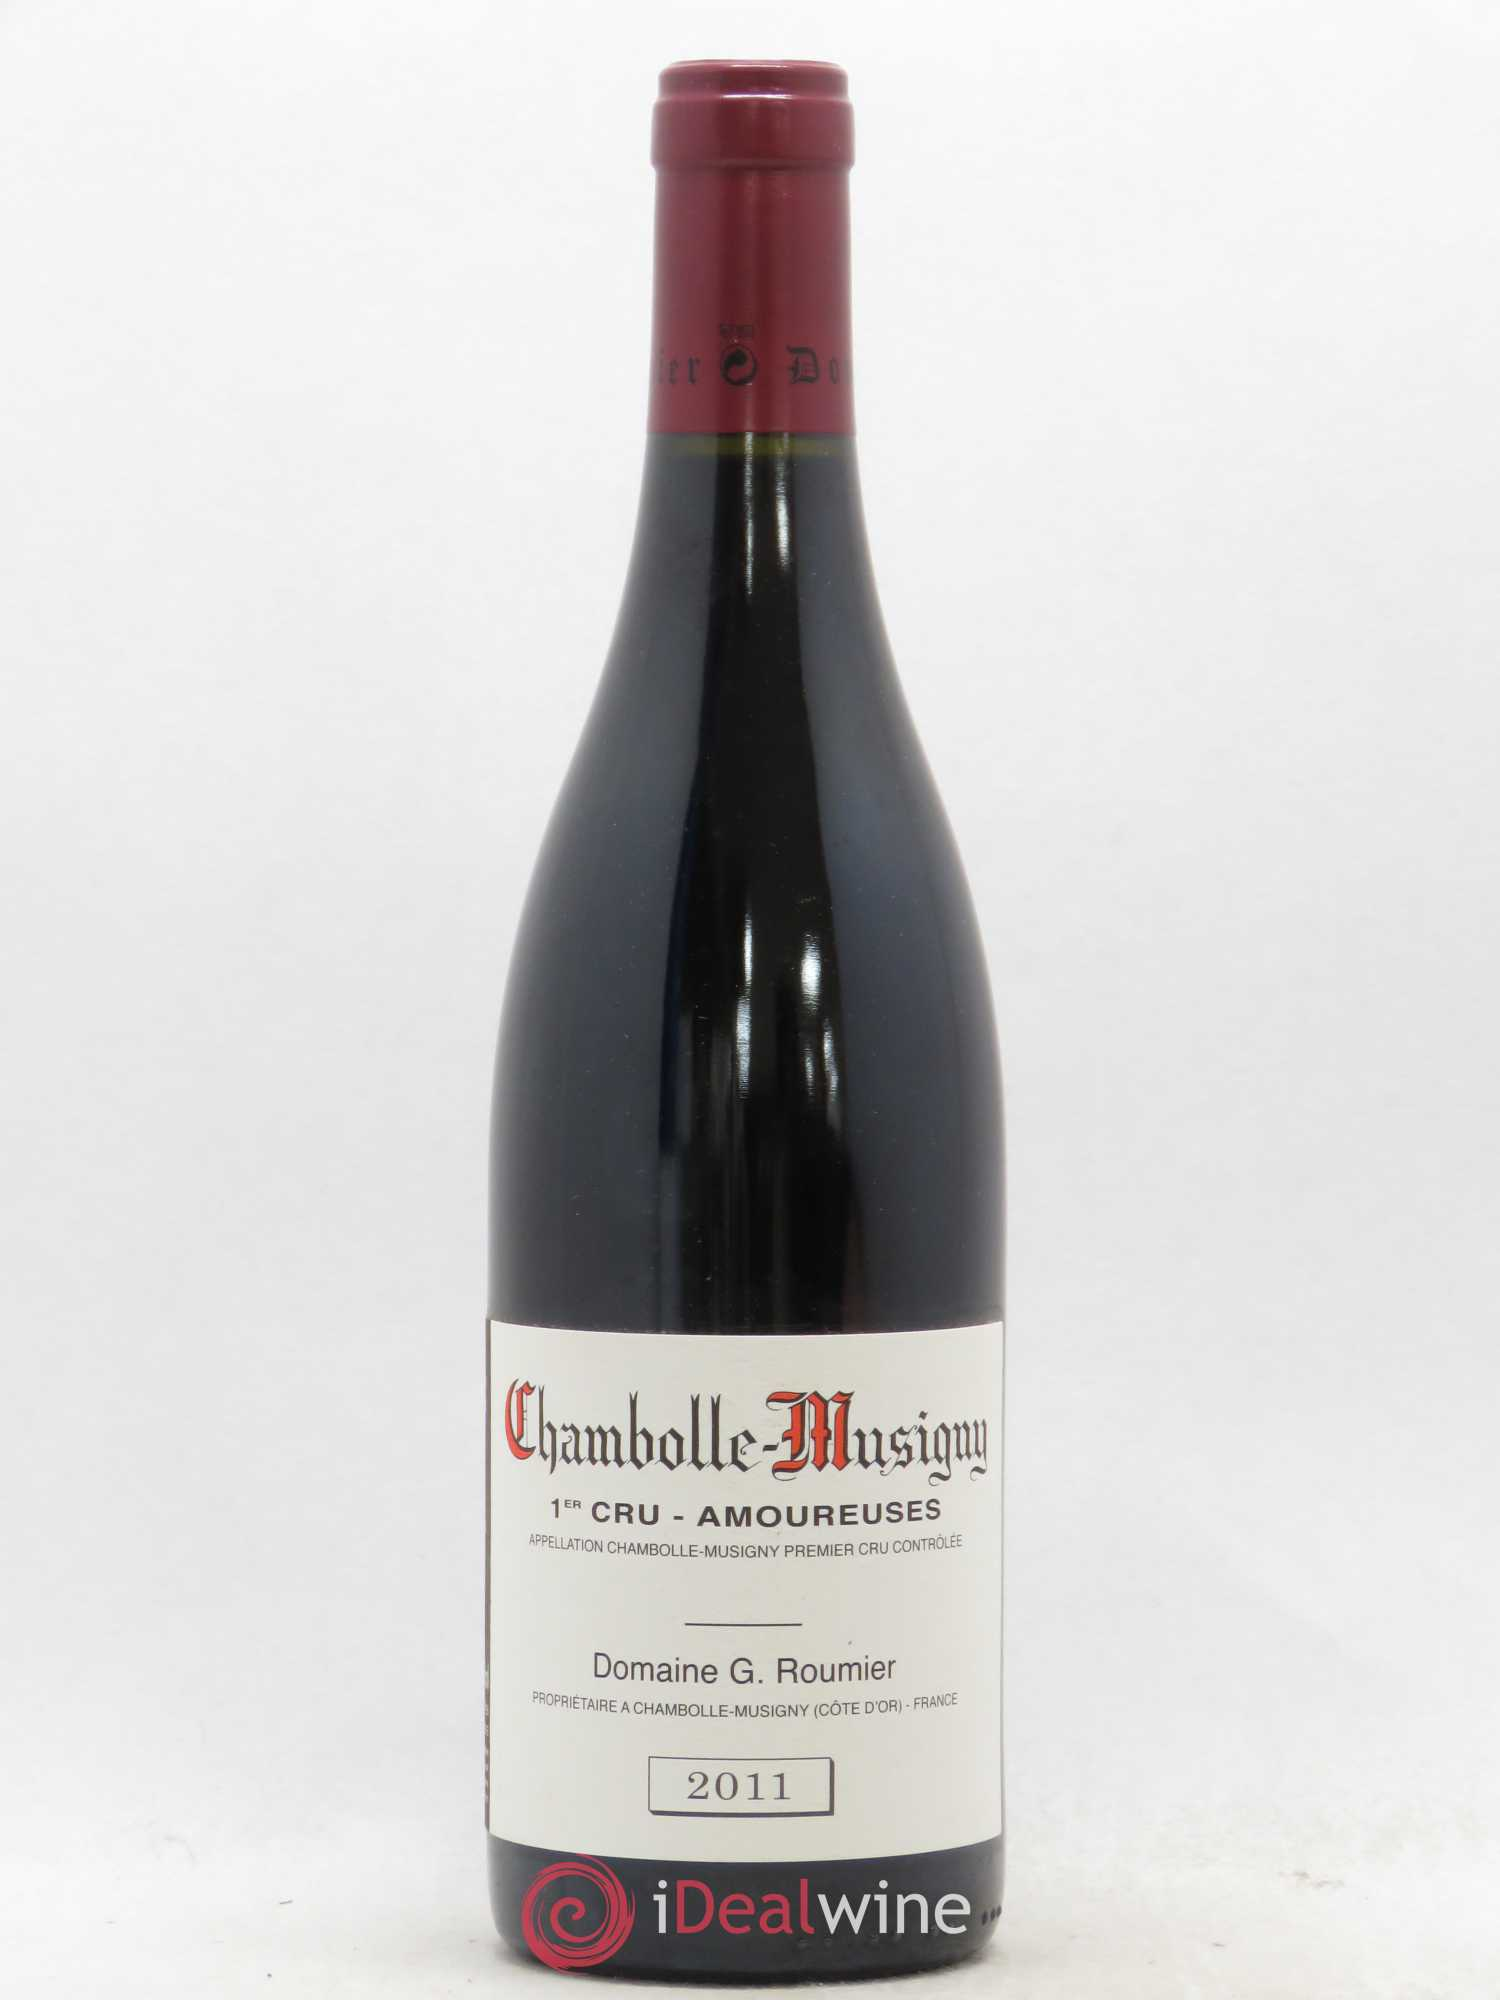 Chambolle-Musigny 1er Cru Les Amoureuses Georges Roumier (Domaine)